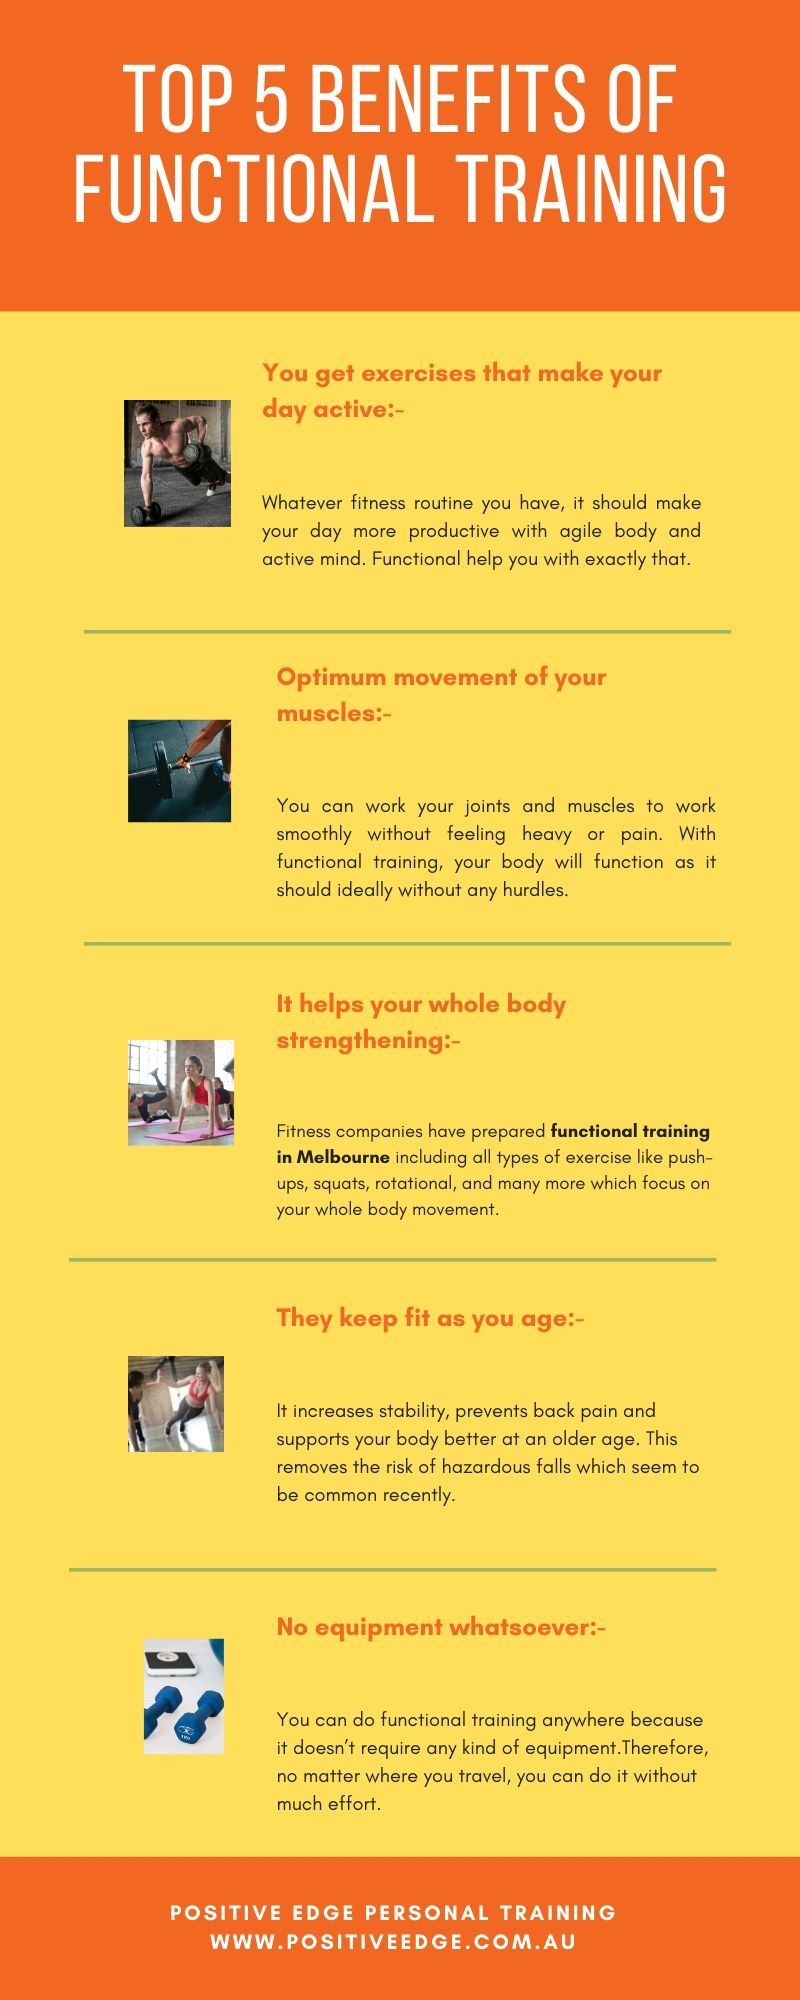 In this infographic you can find information about